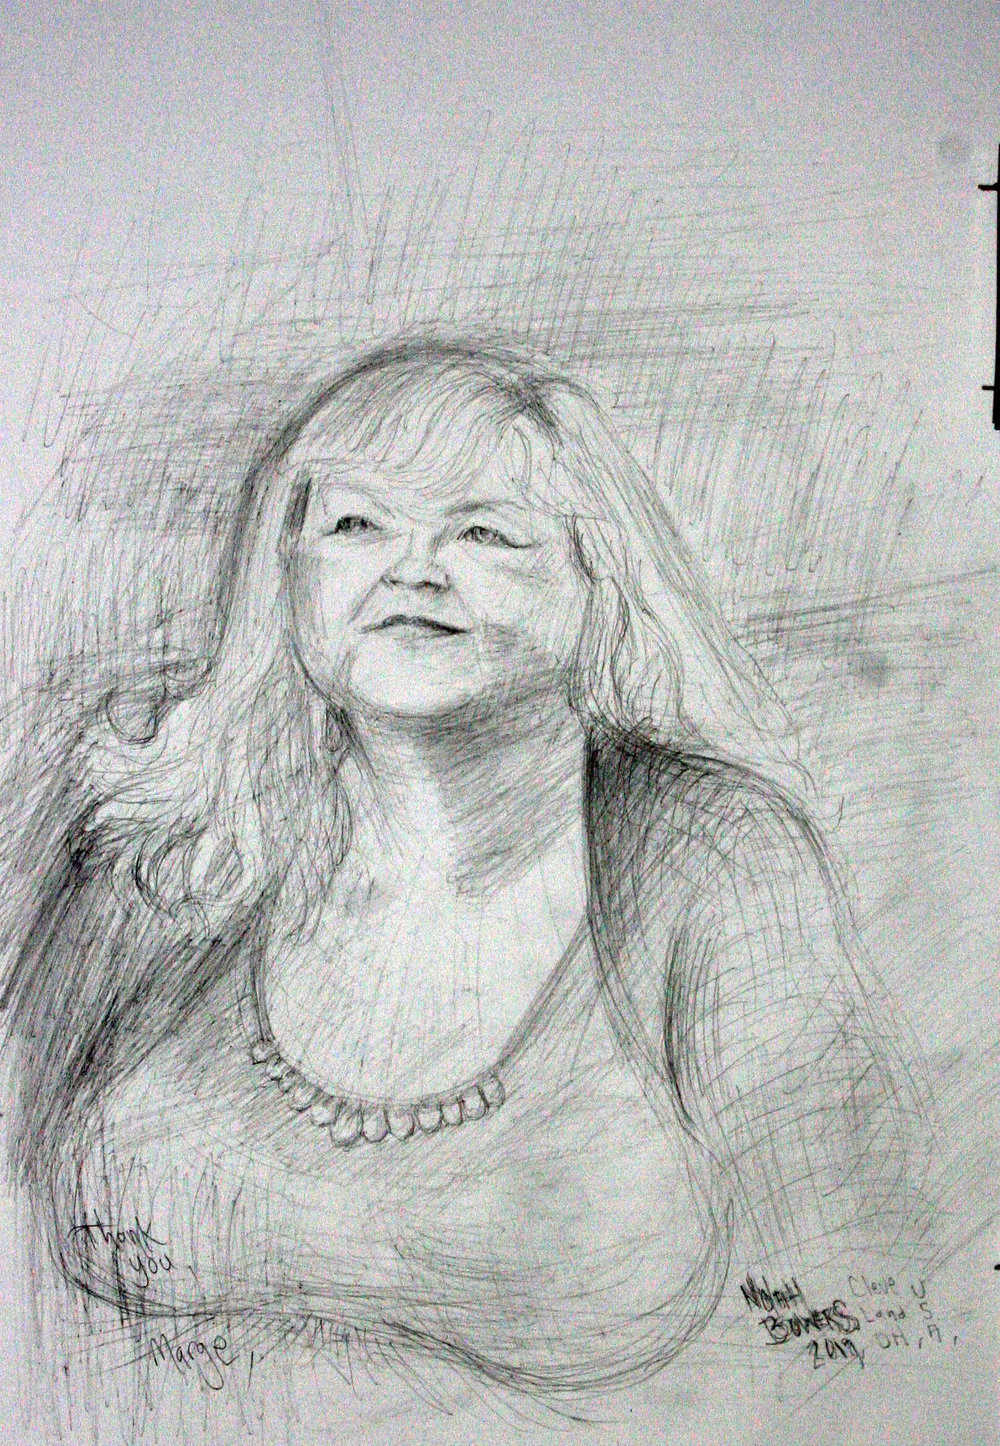 Noah Bowers did this drawing.